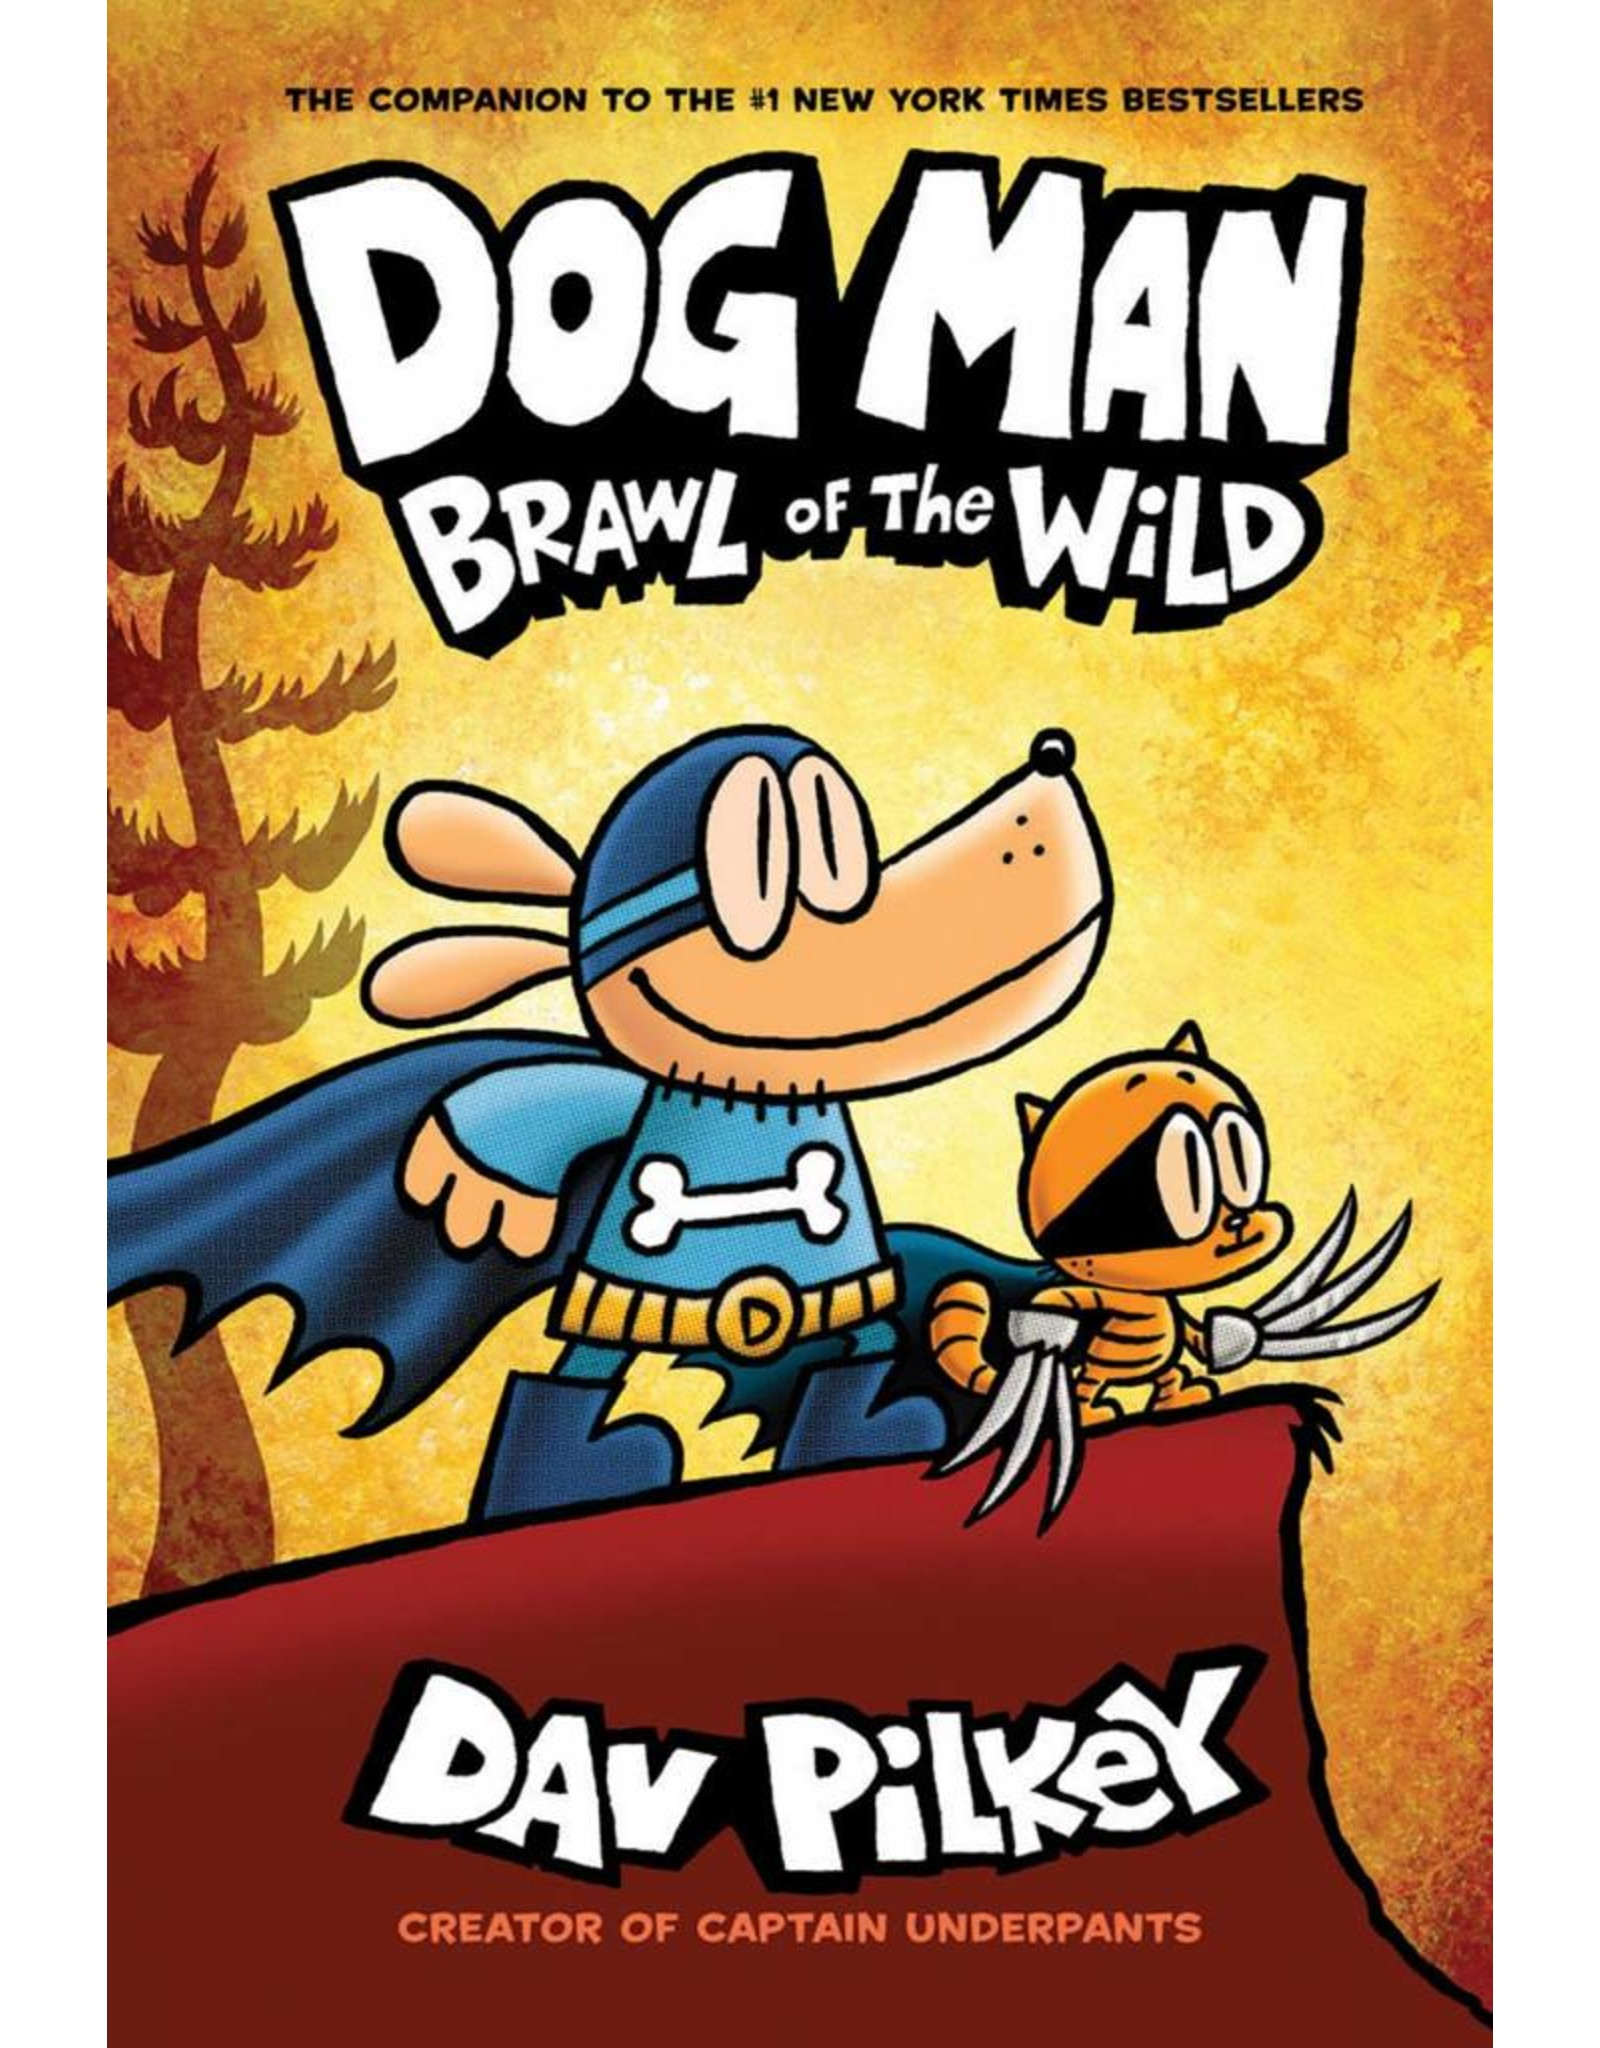 GRAPHIX DOG MAN GN VOL 06 BRAWL OF THE WILD